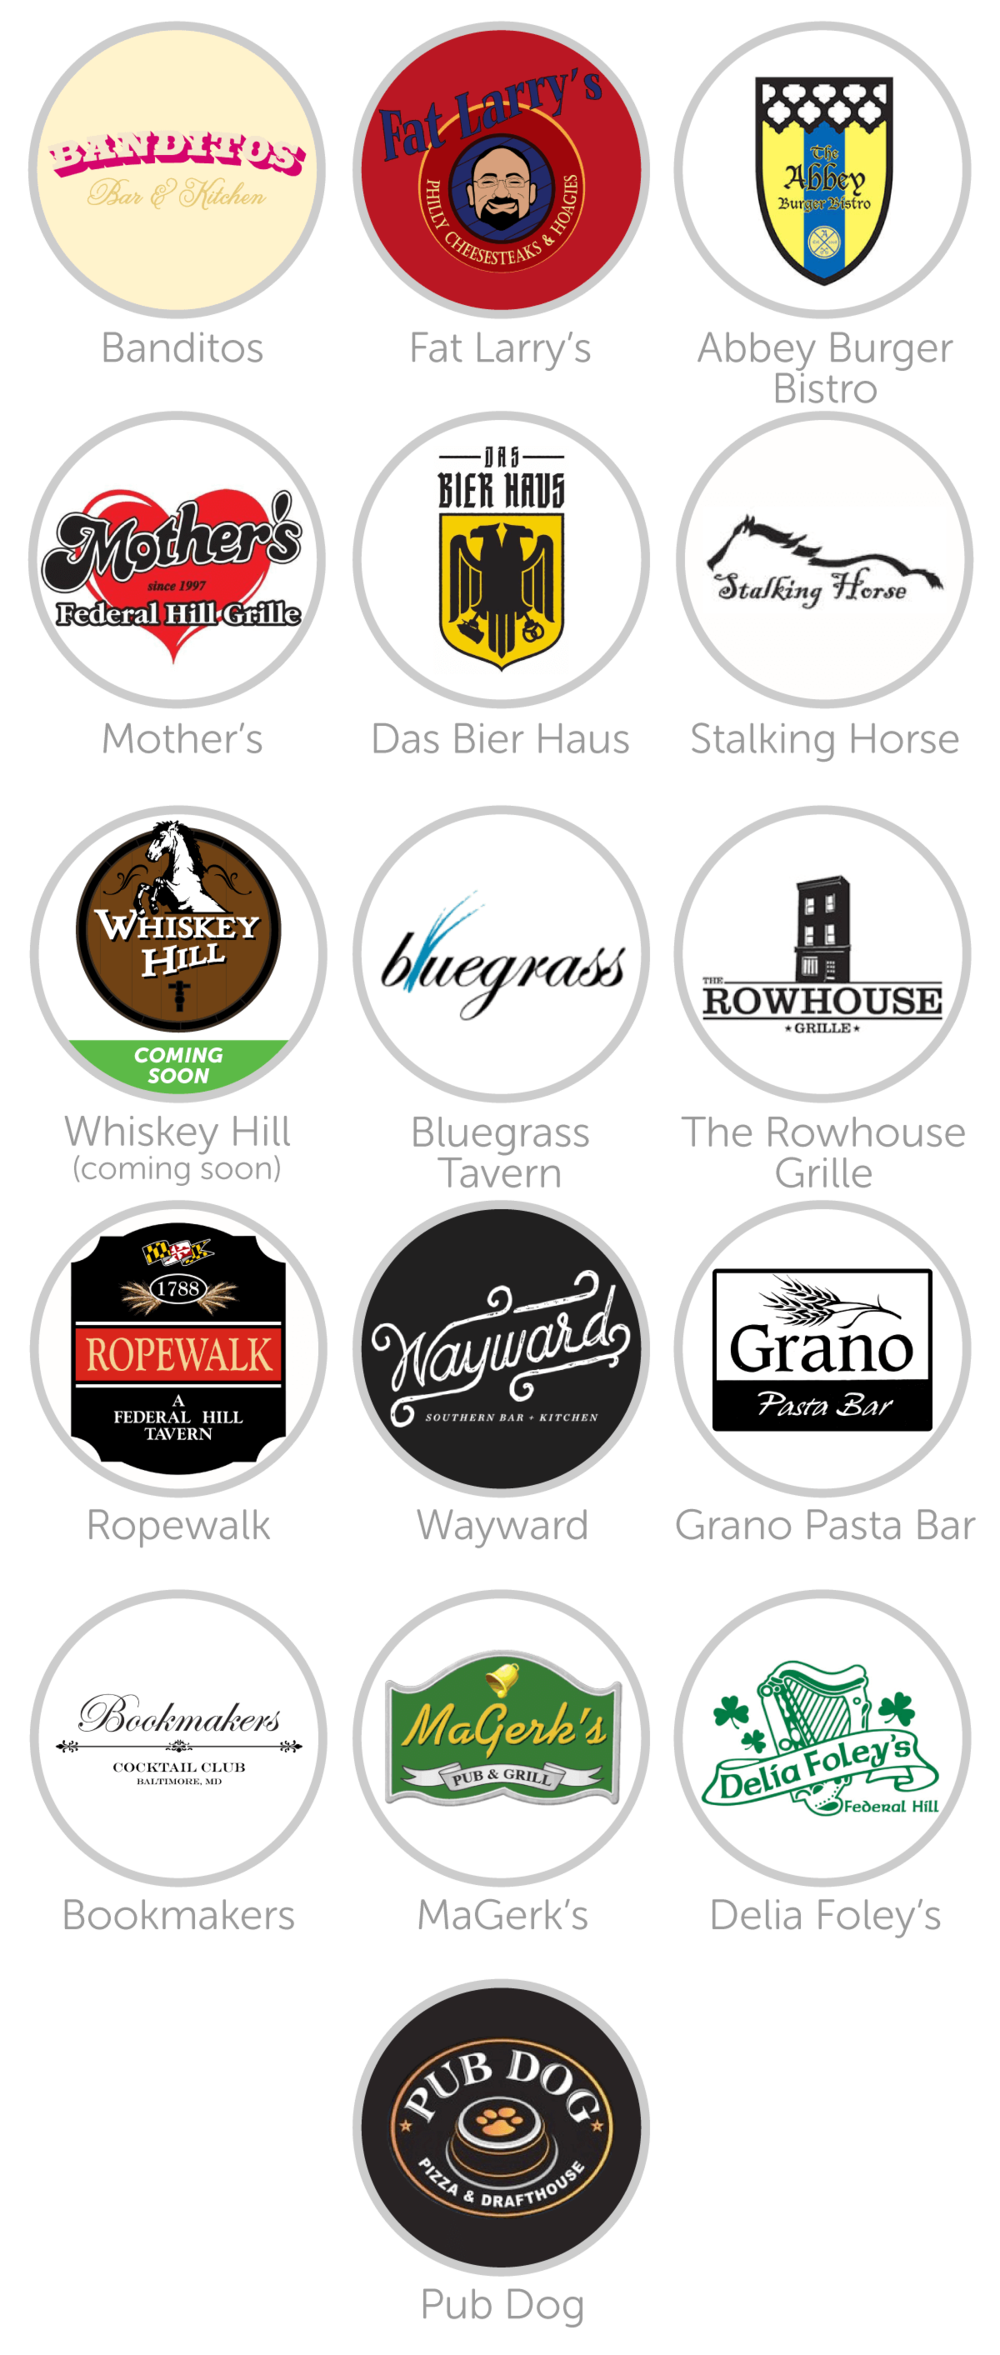 Fed-Hill-Spotluck-Restaurant-Logos-Federal